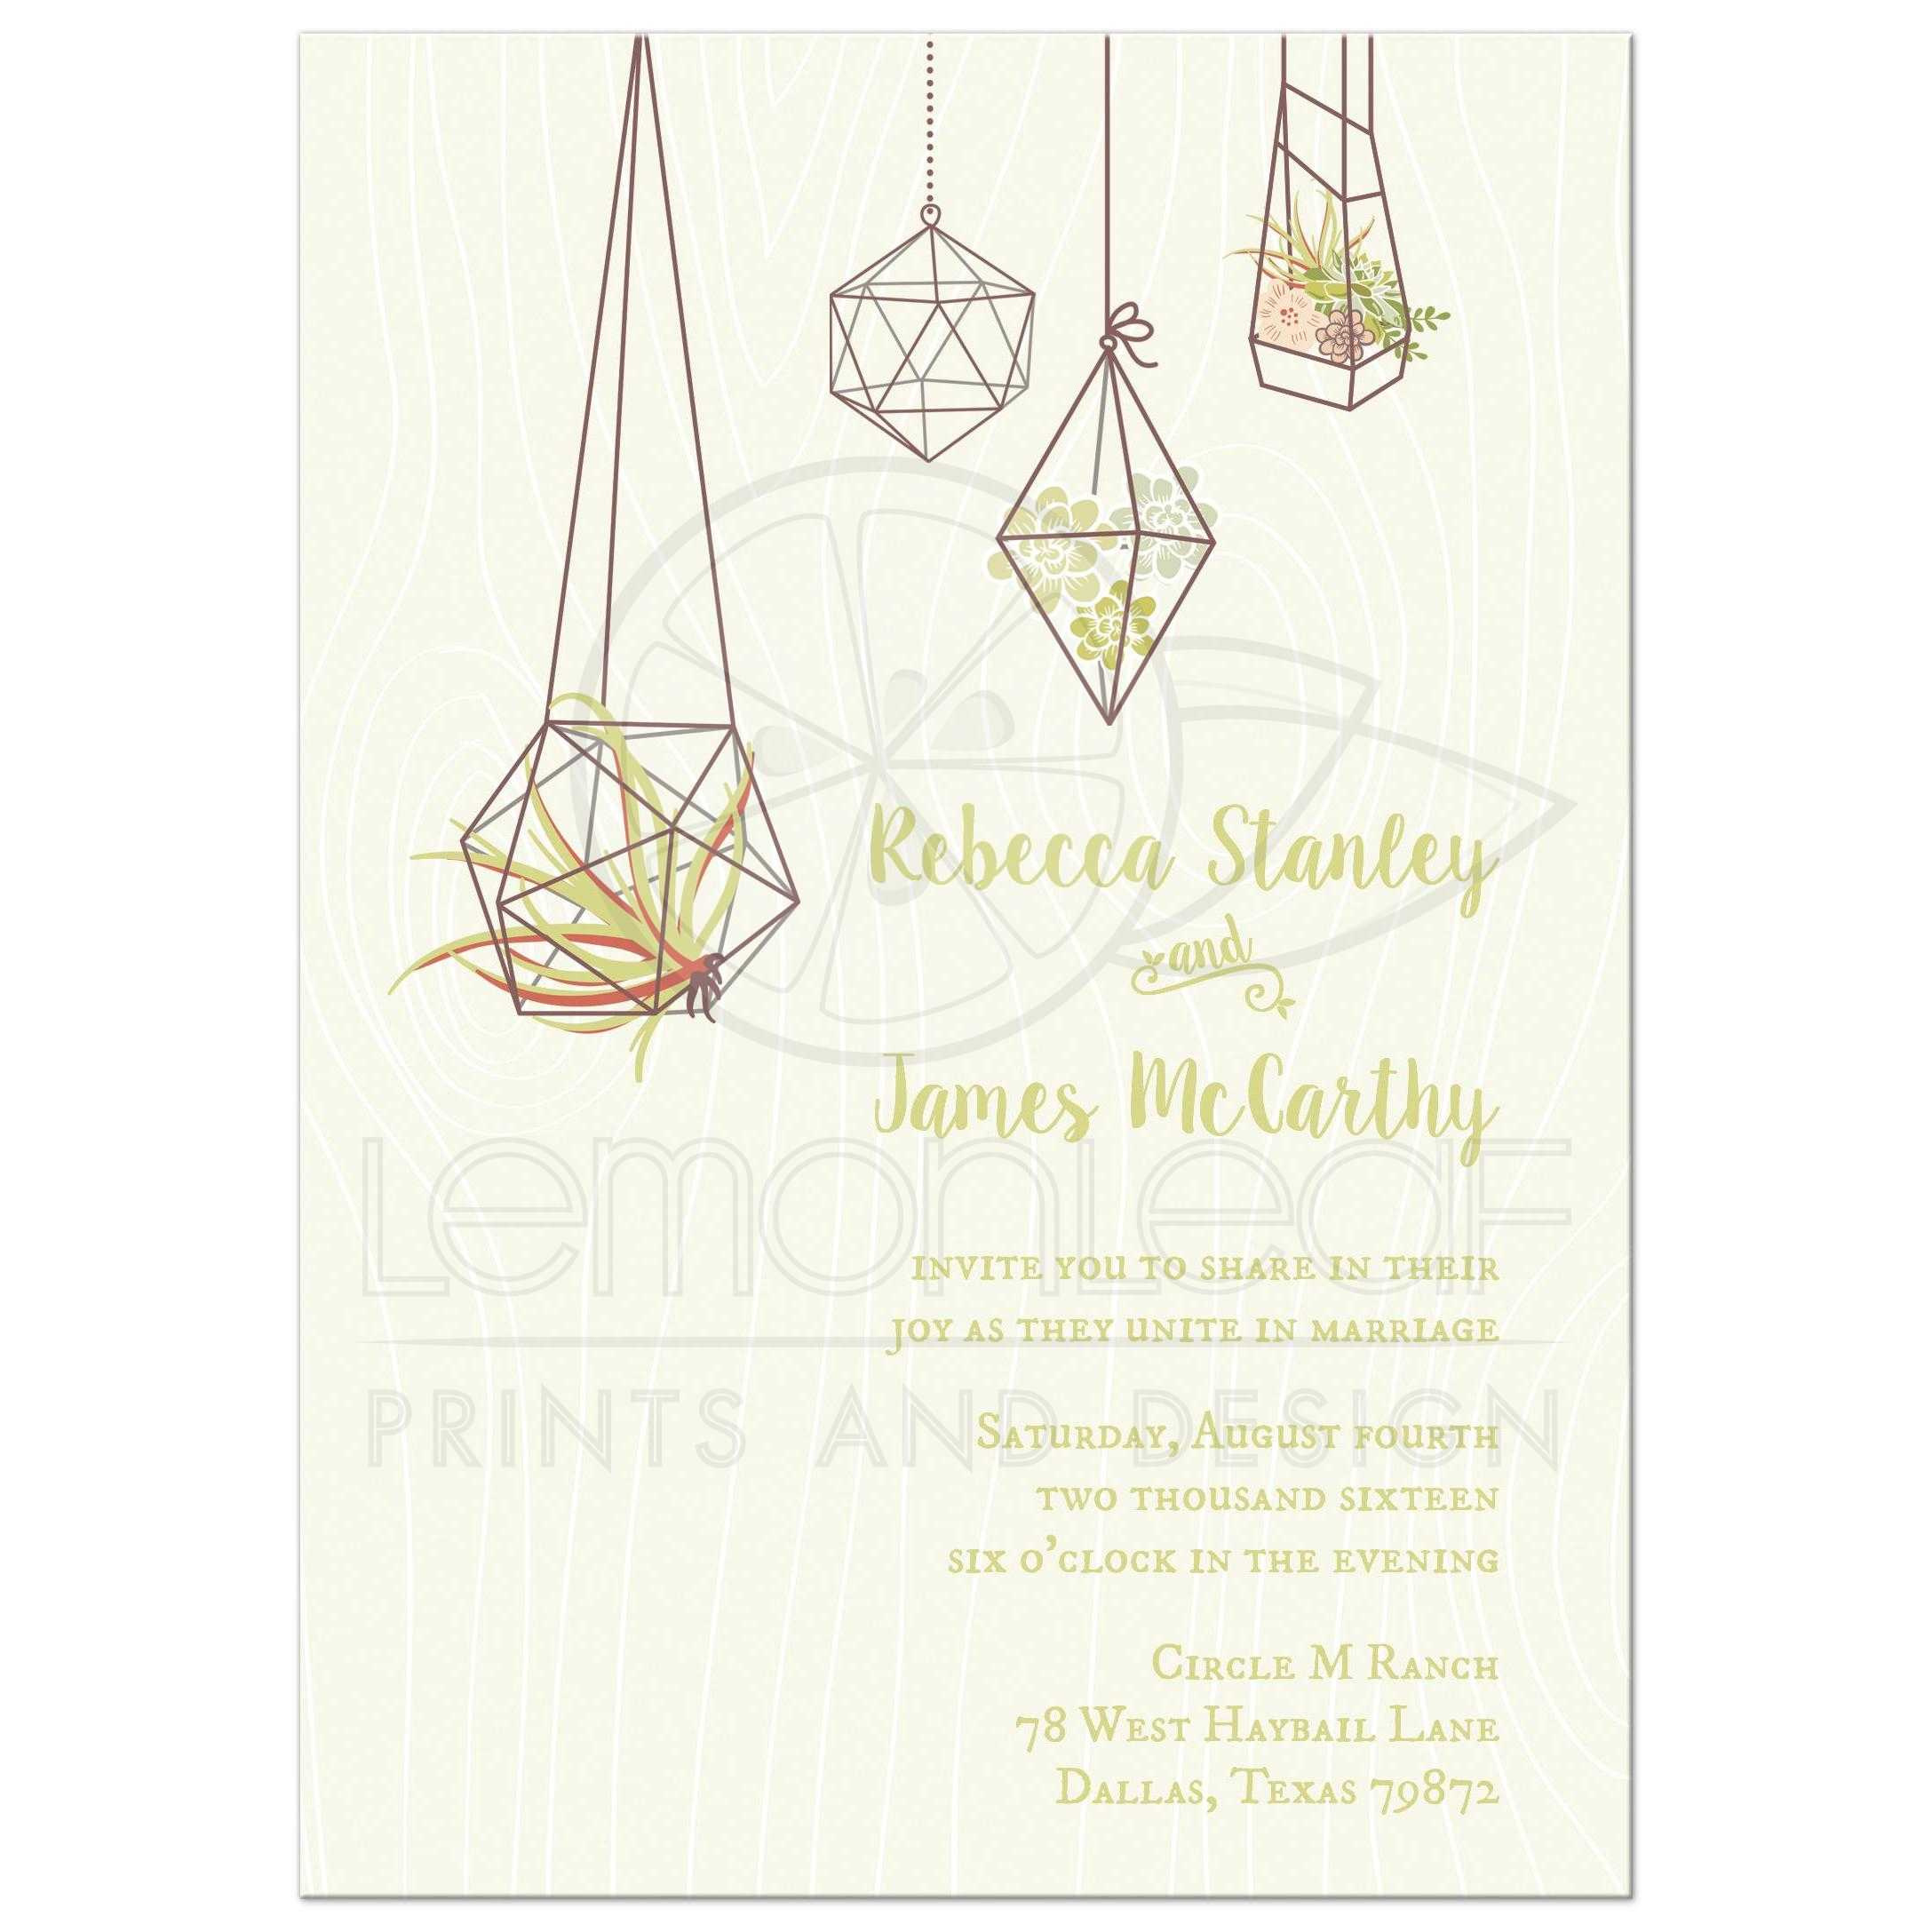 Wedding Invitation Hanging Air Plant And Succulents